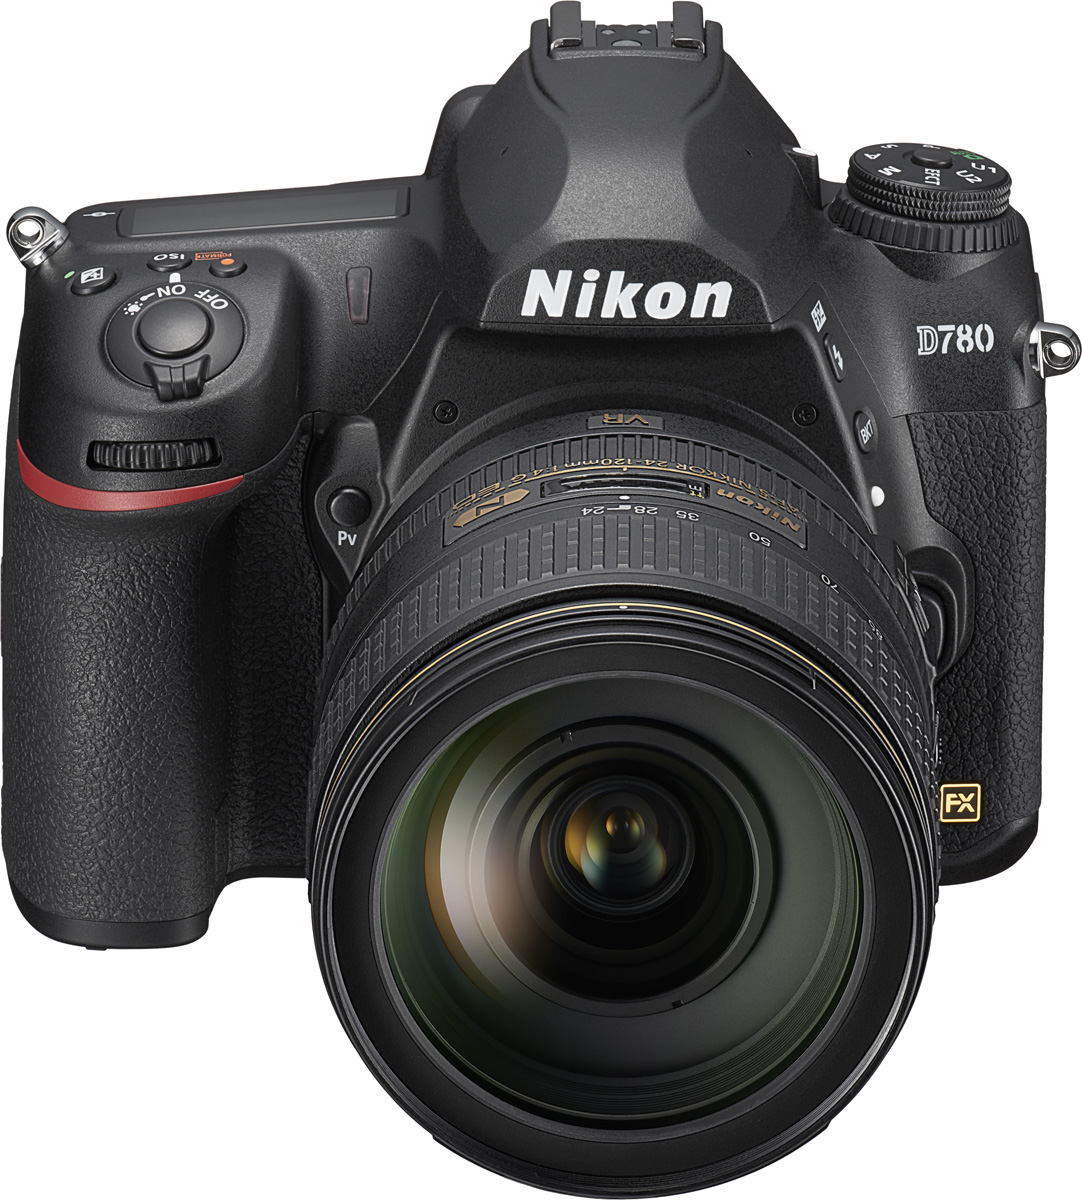 Nikon D780 DSLR Camera - now in stock!